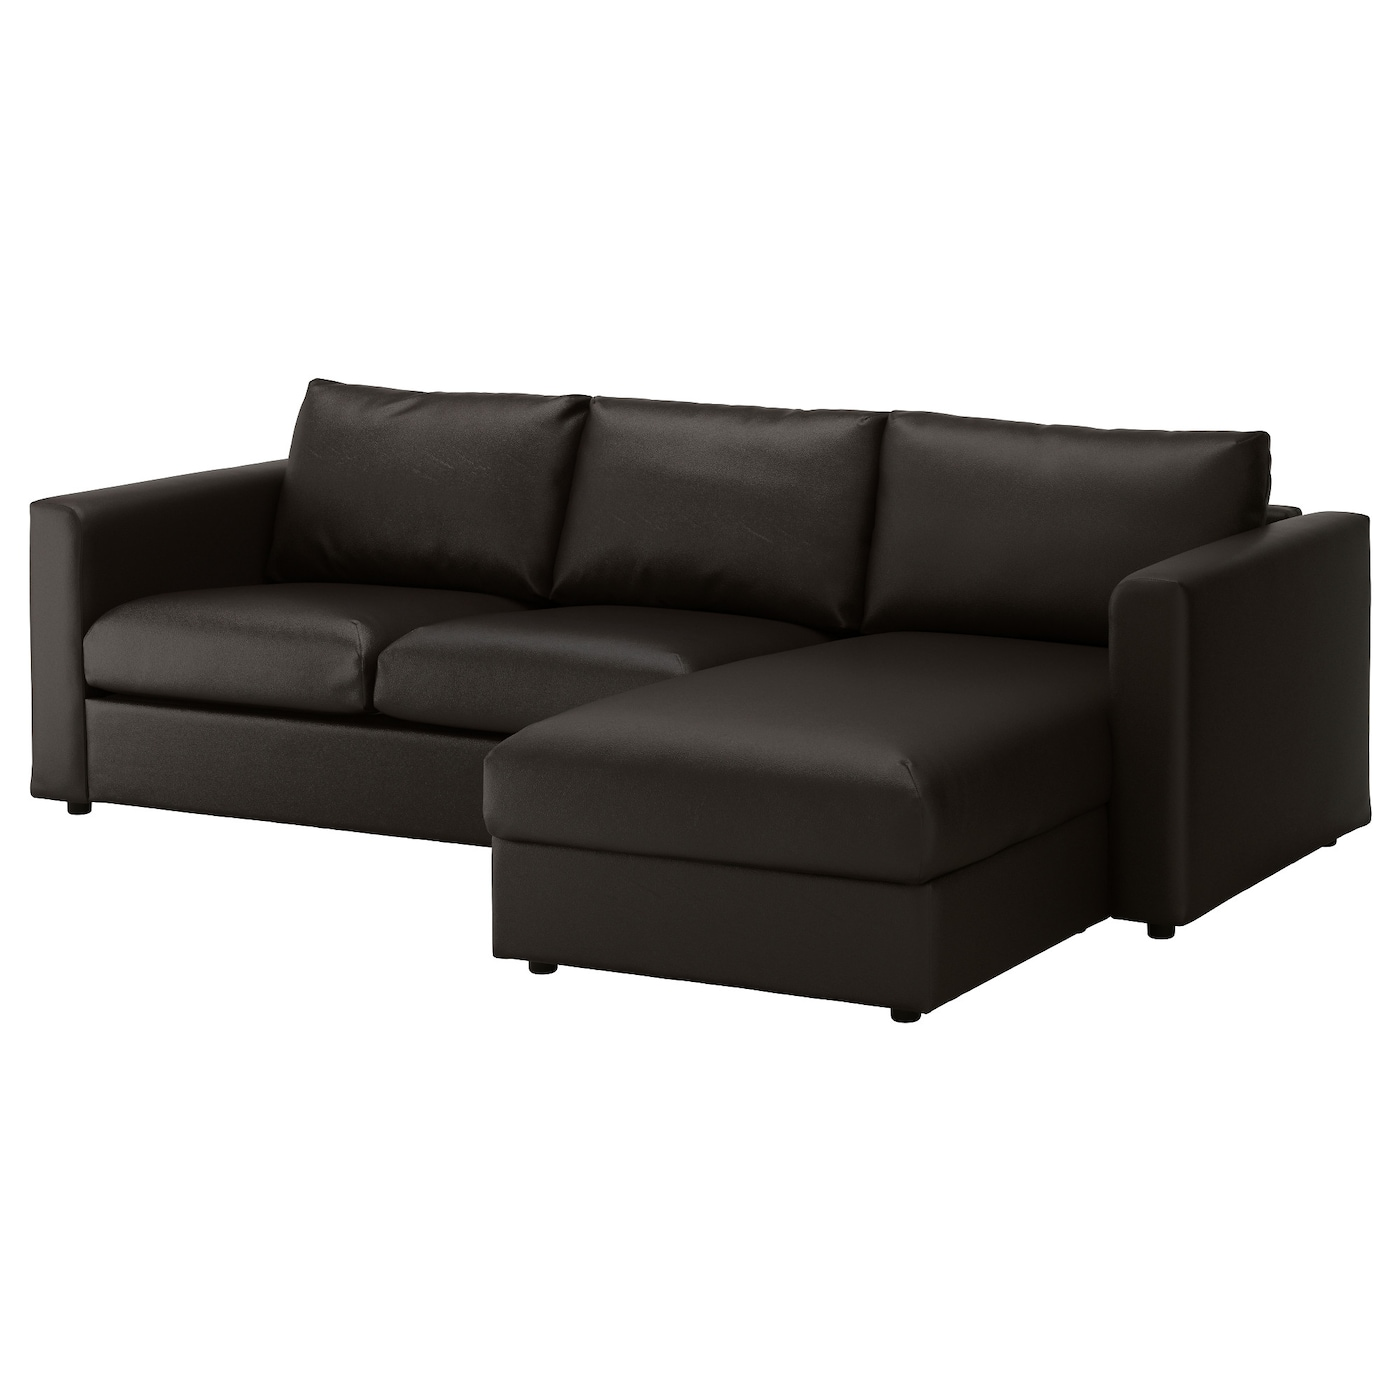 vimle 3 seat sofa with chaise longue farsta black ikea. Black Bedroom Furniture Sets. Home Design Ideas